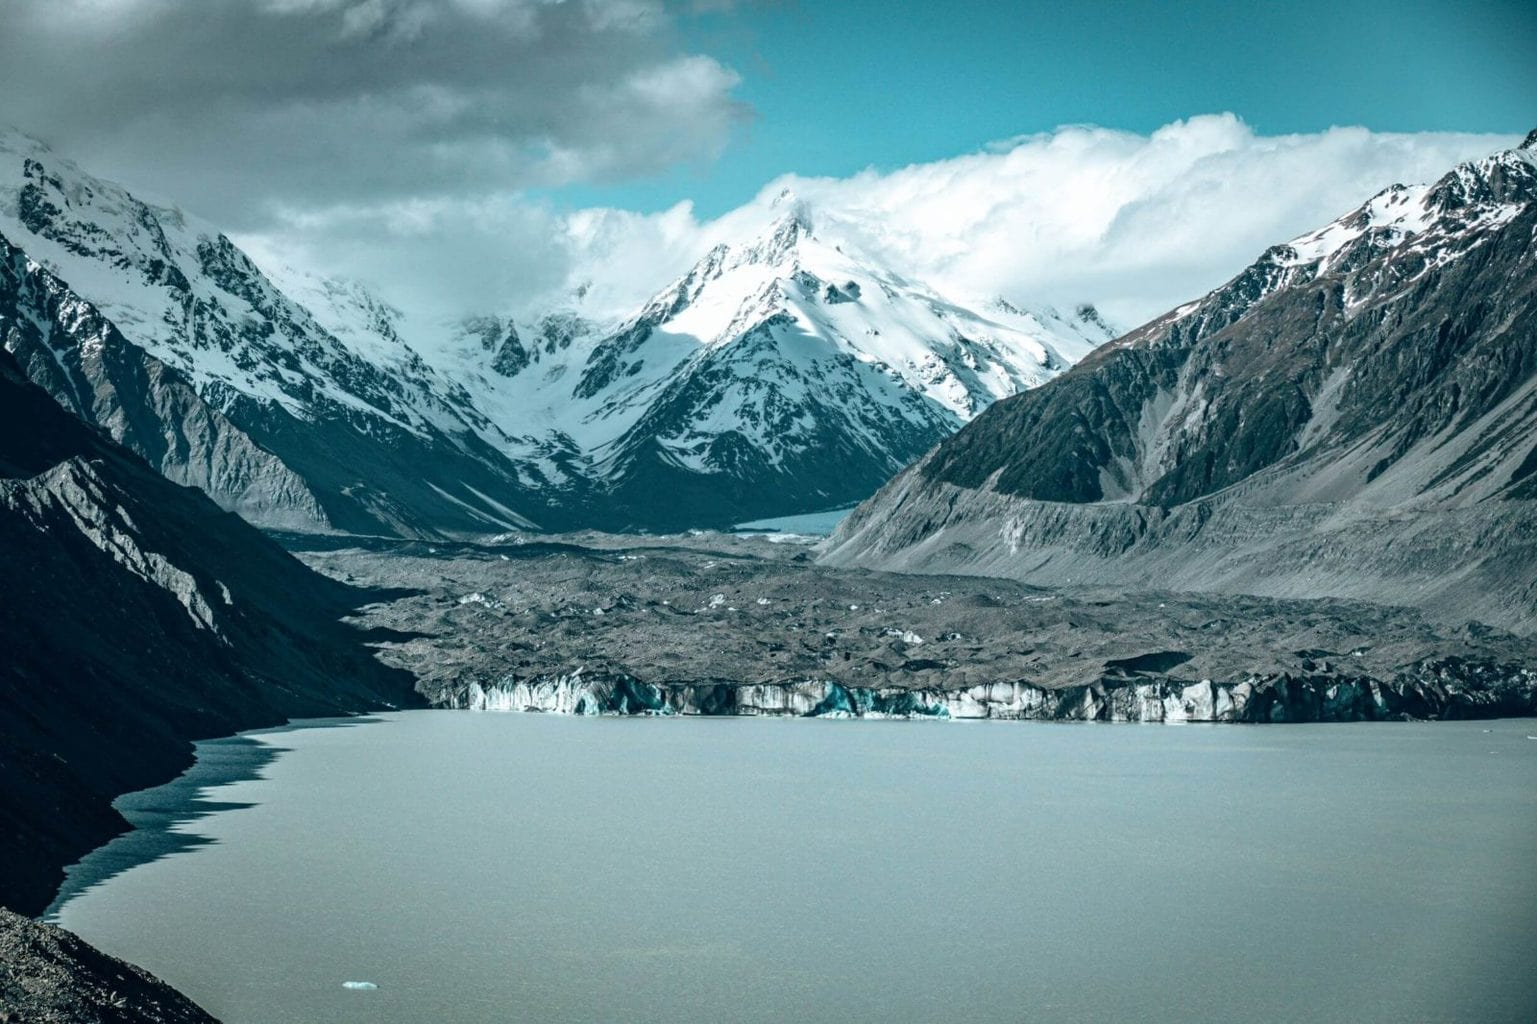 A view of the Tasman Glacier from atop